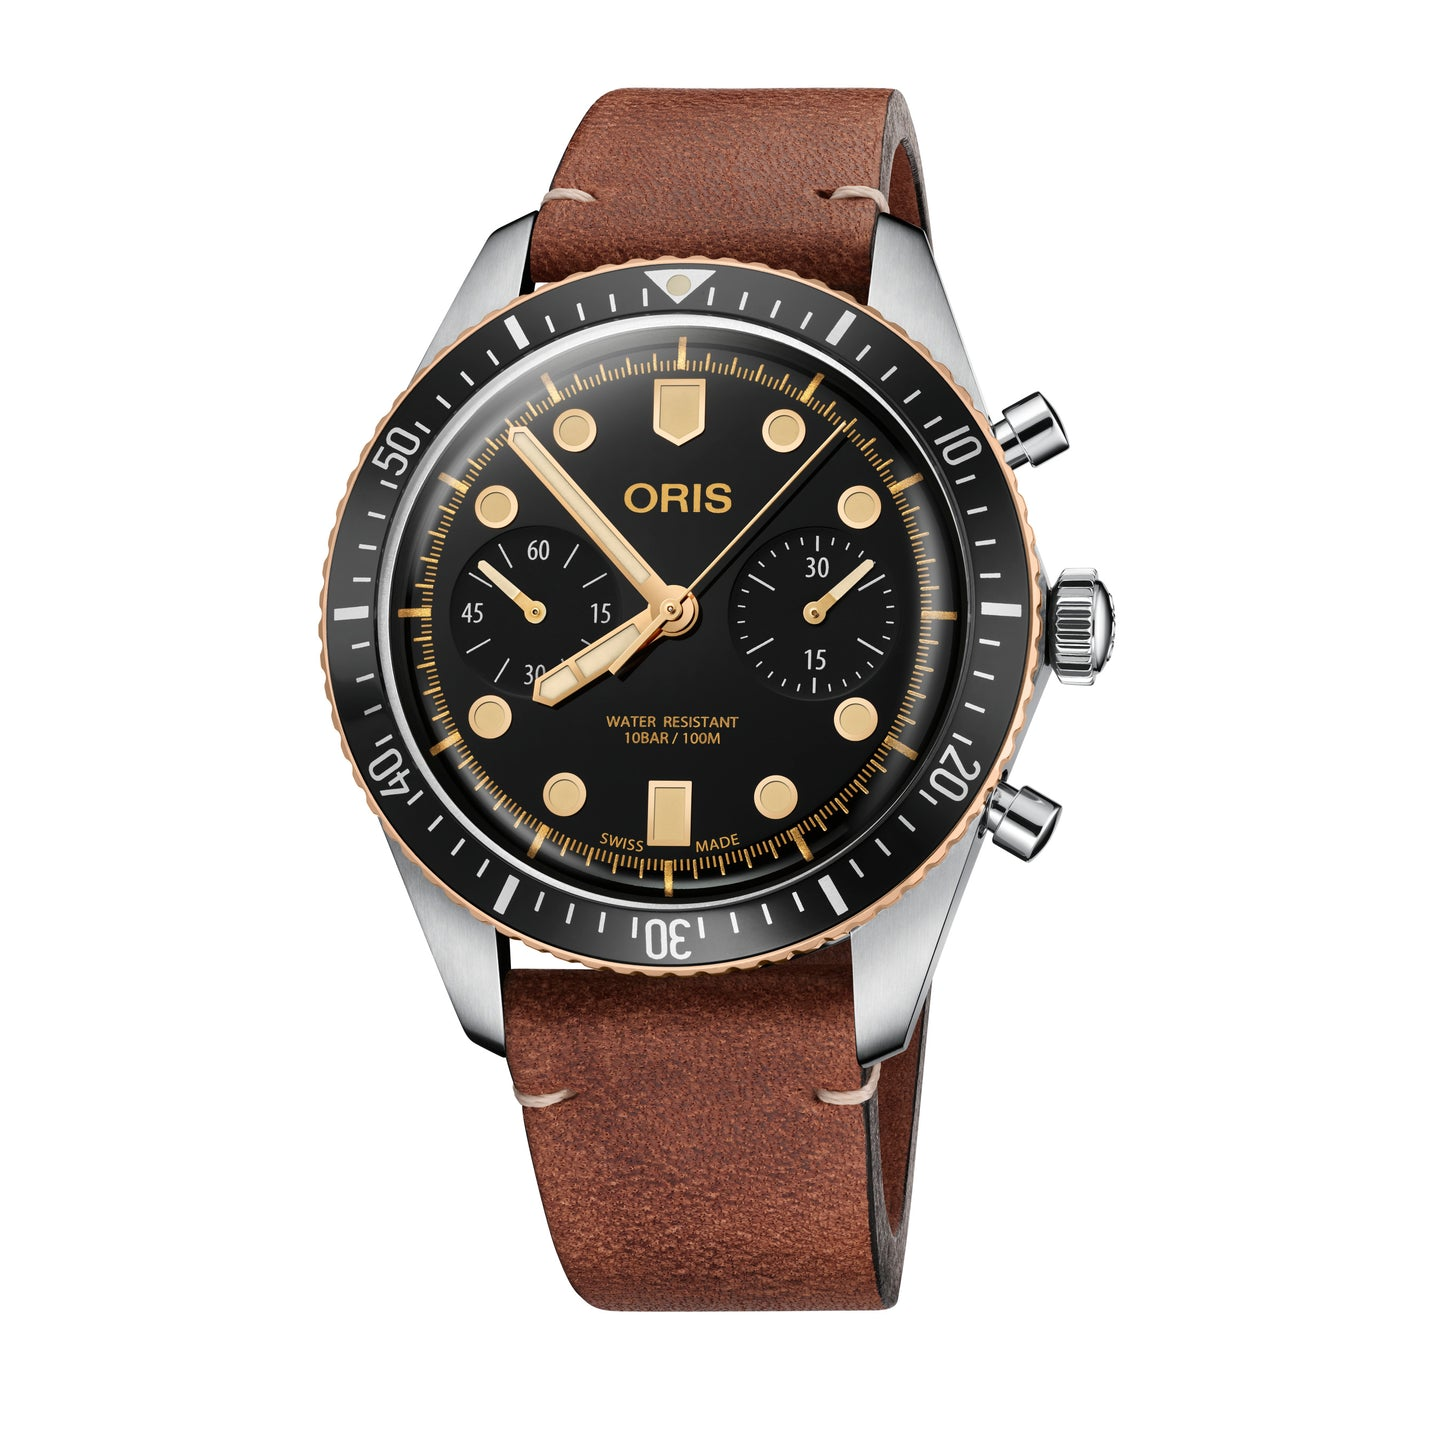 Oris Divers Sixty-Five Automatic Chronograph Watch with Black Dial and Leather Strap